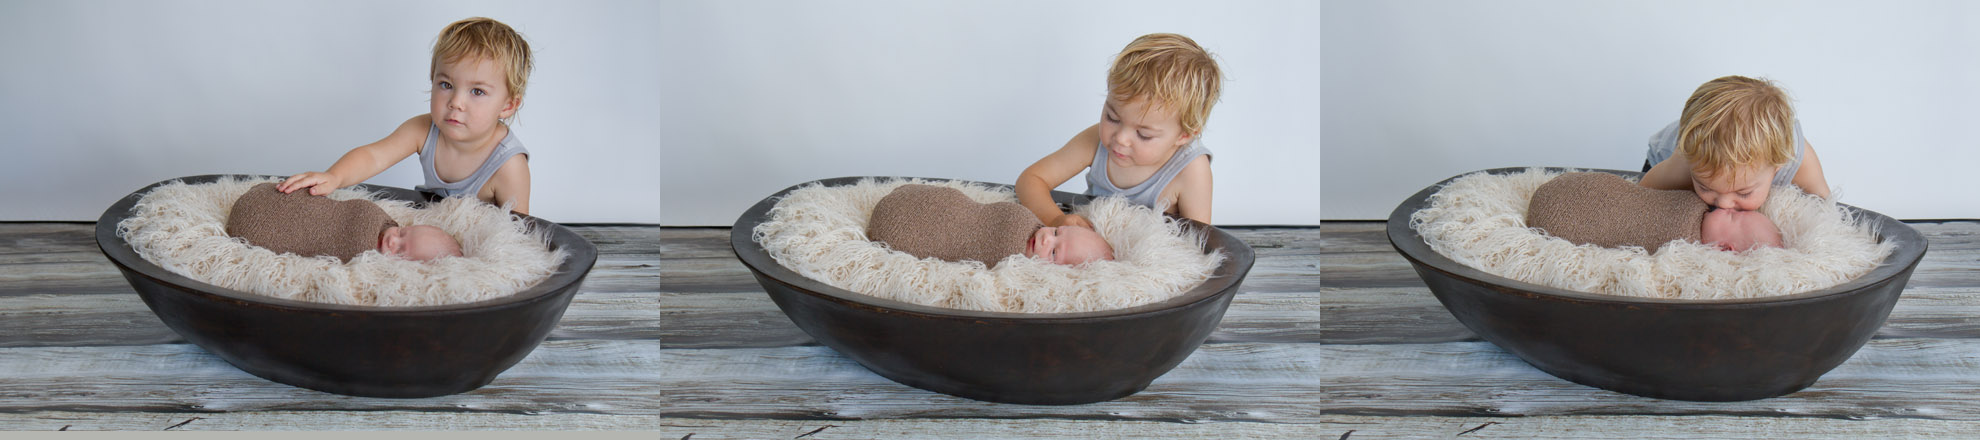 Baby-and-sibling-photography.jpg